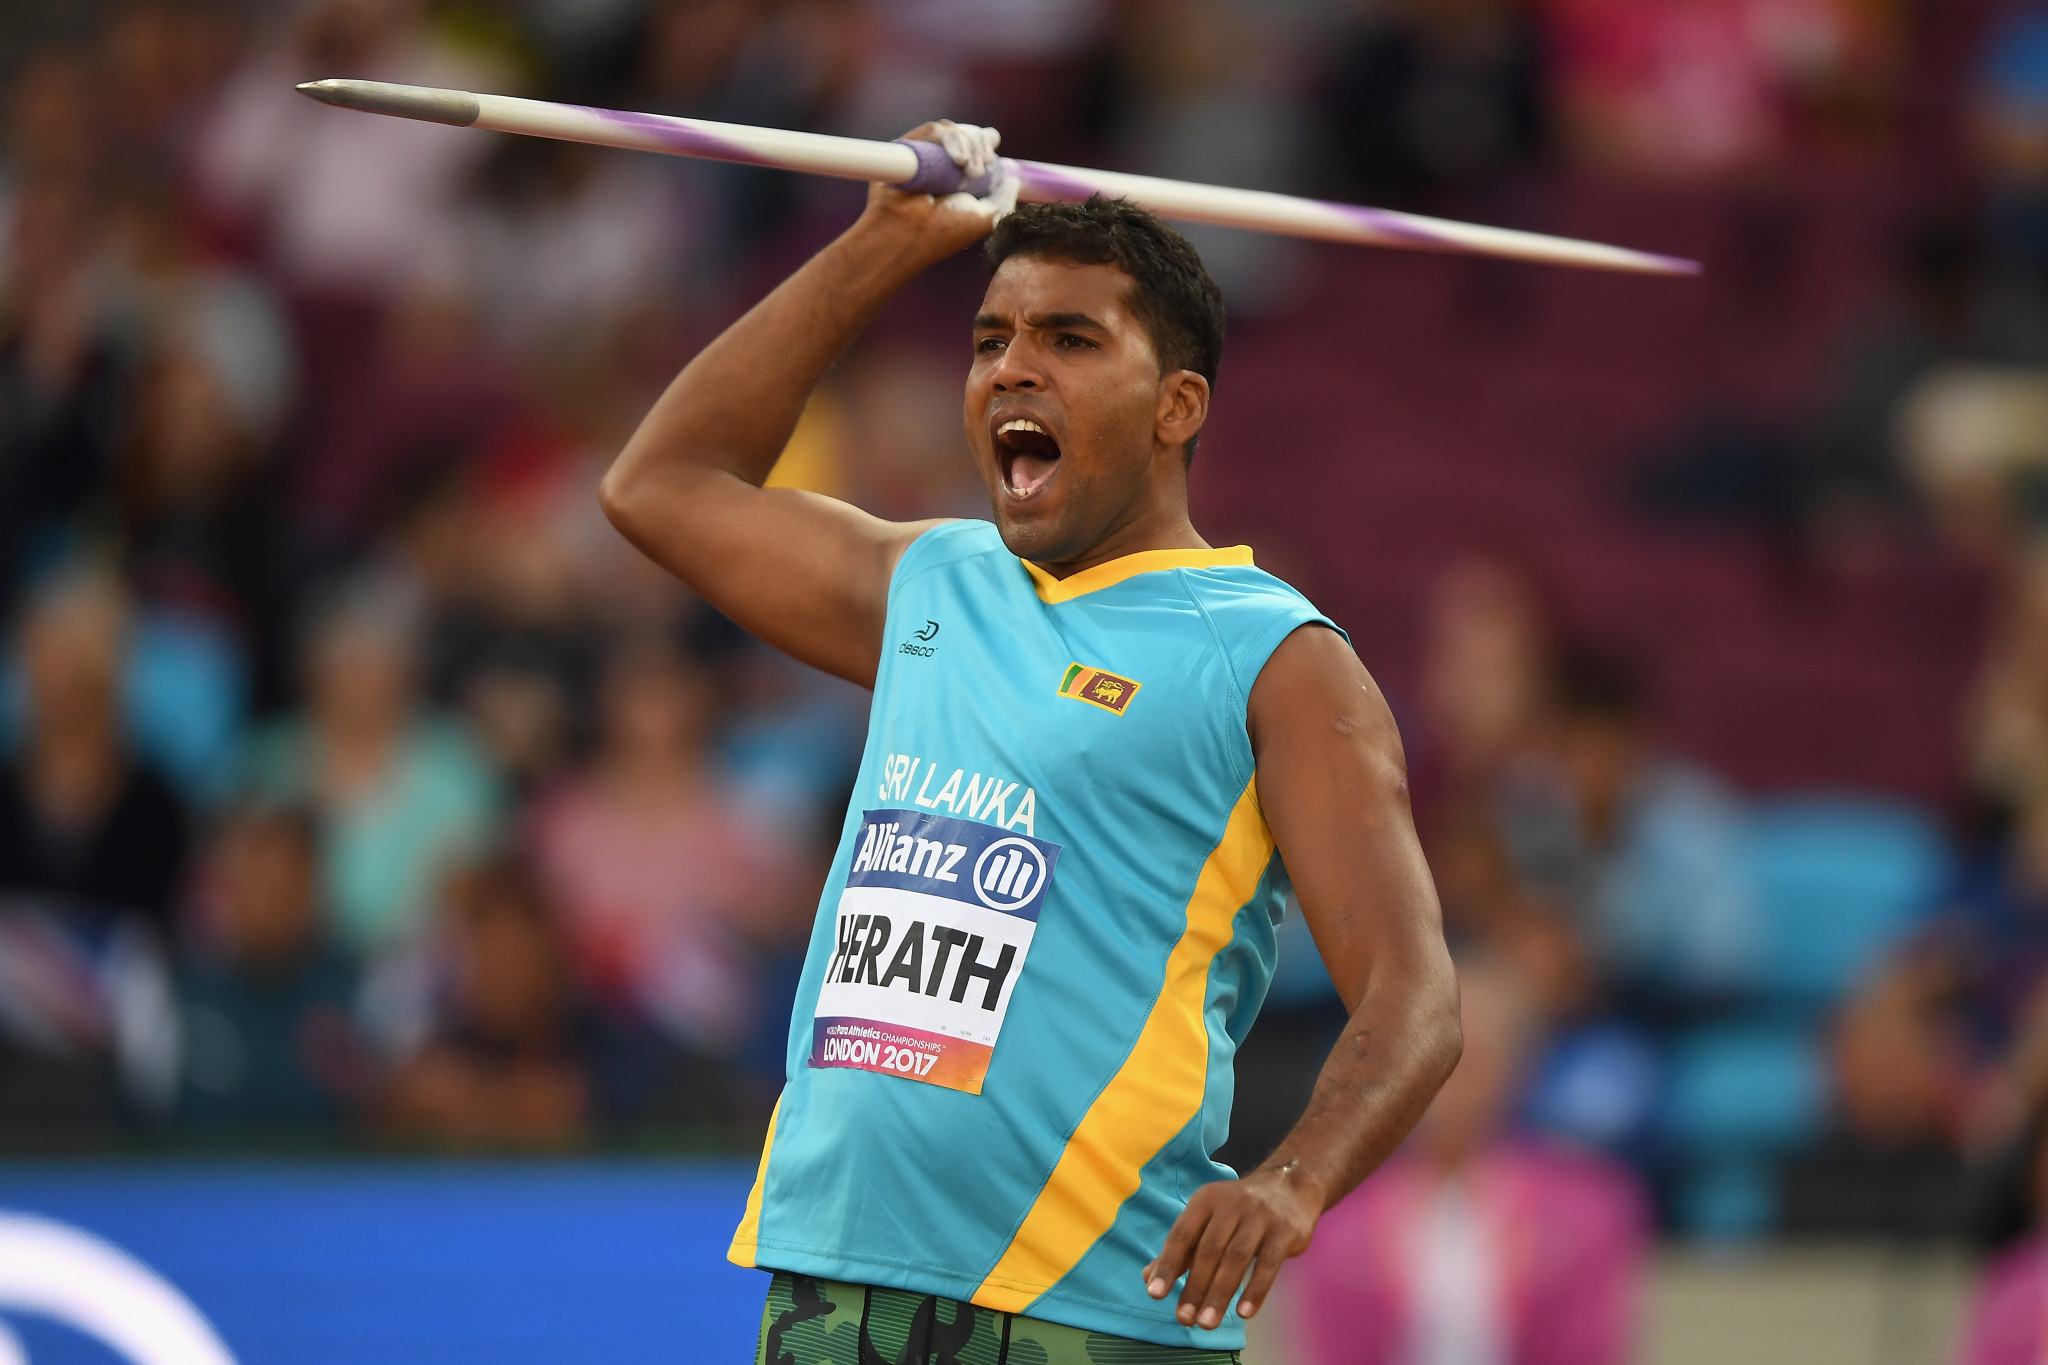 Sri Lankan Tokyo 2020 Paralympic medallists rewarded by Ministry of Sports